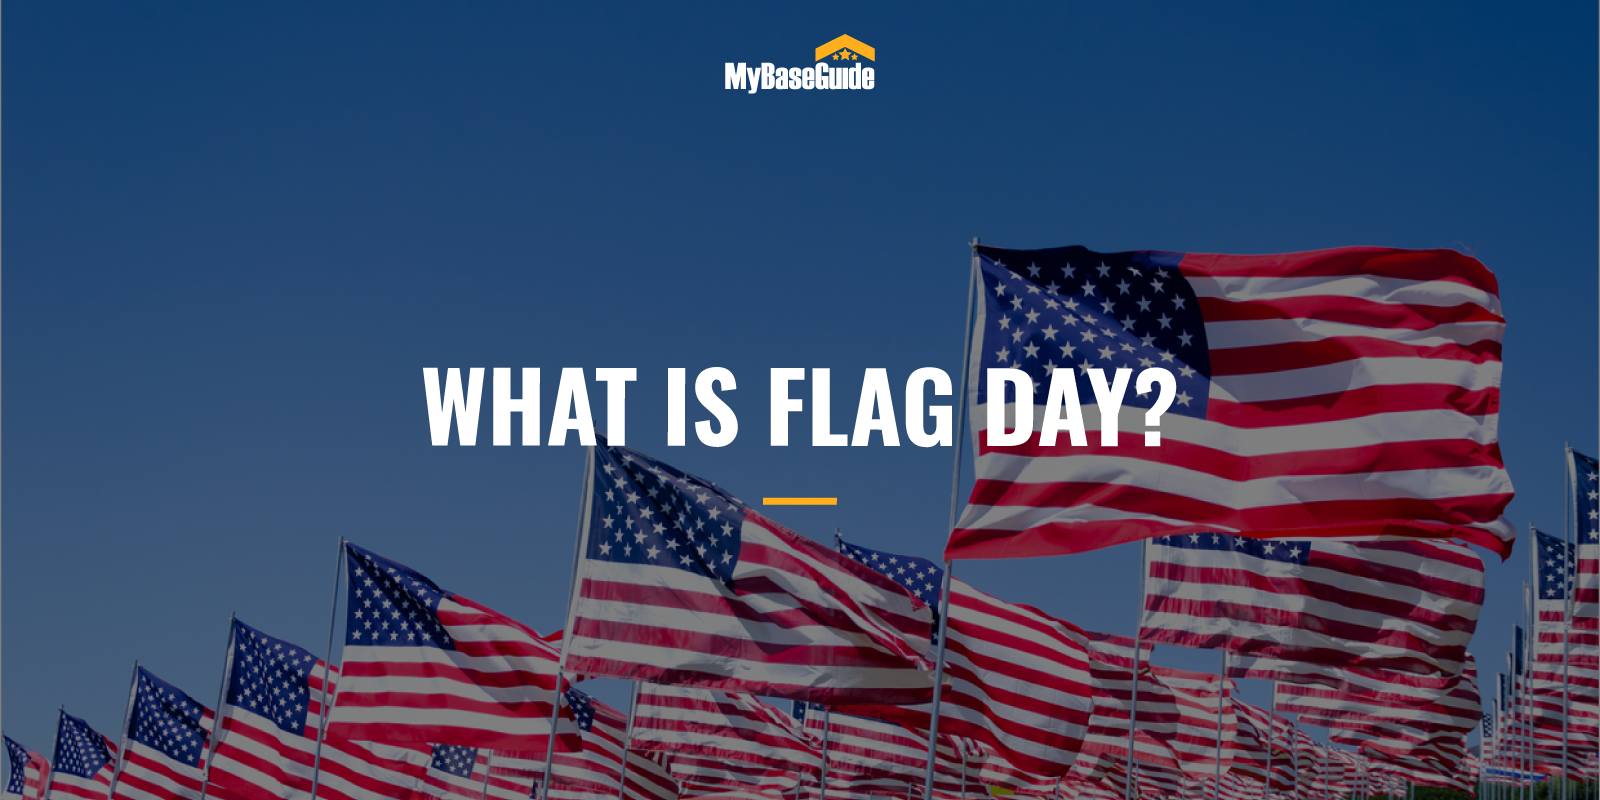 what is flag day?